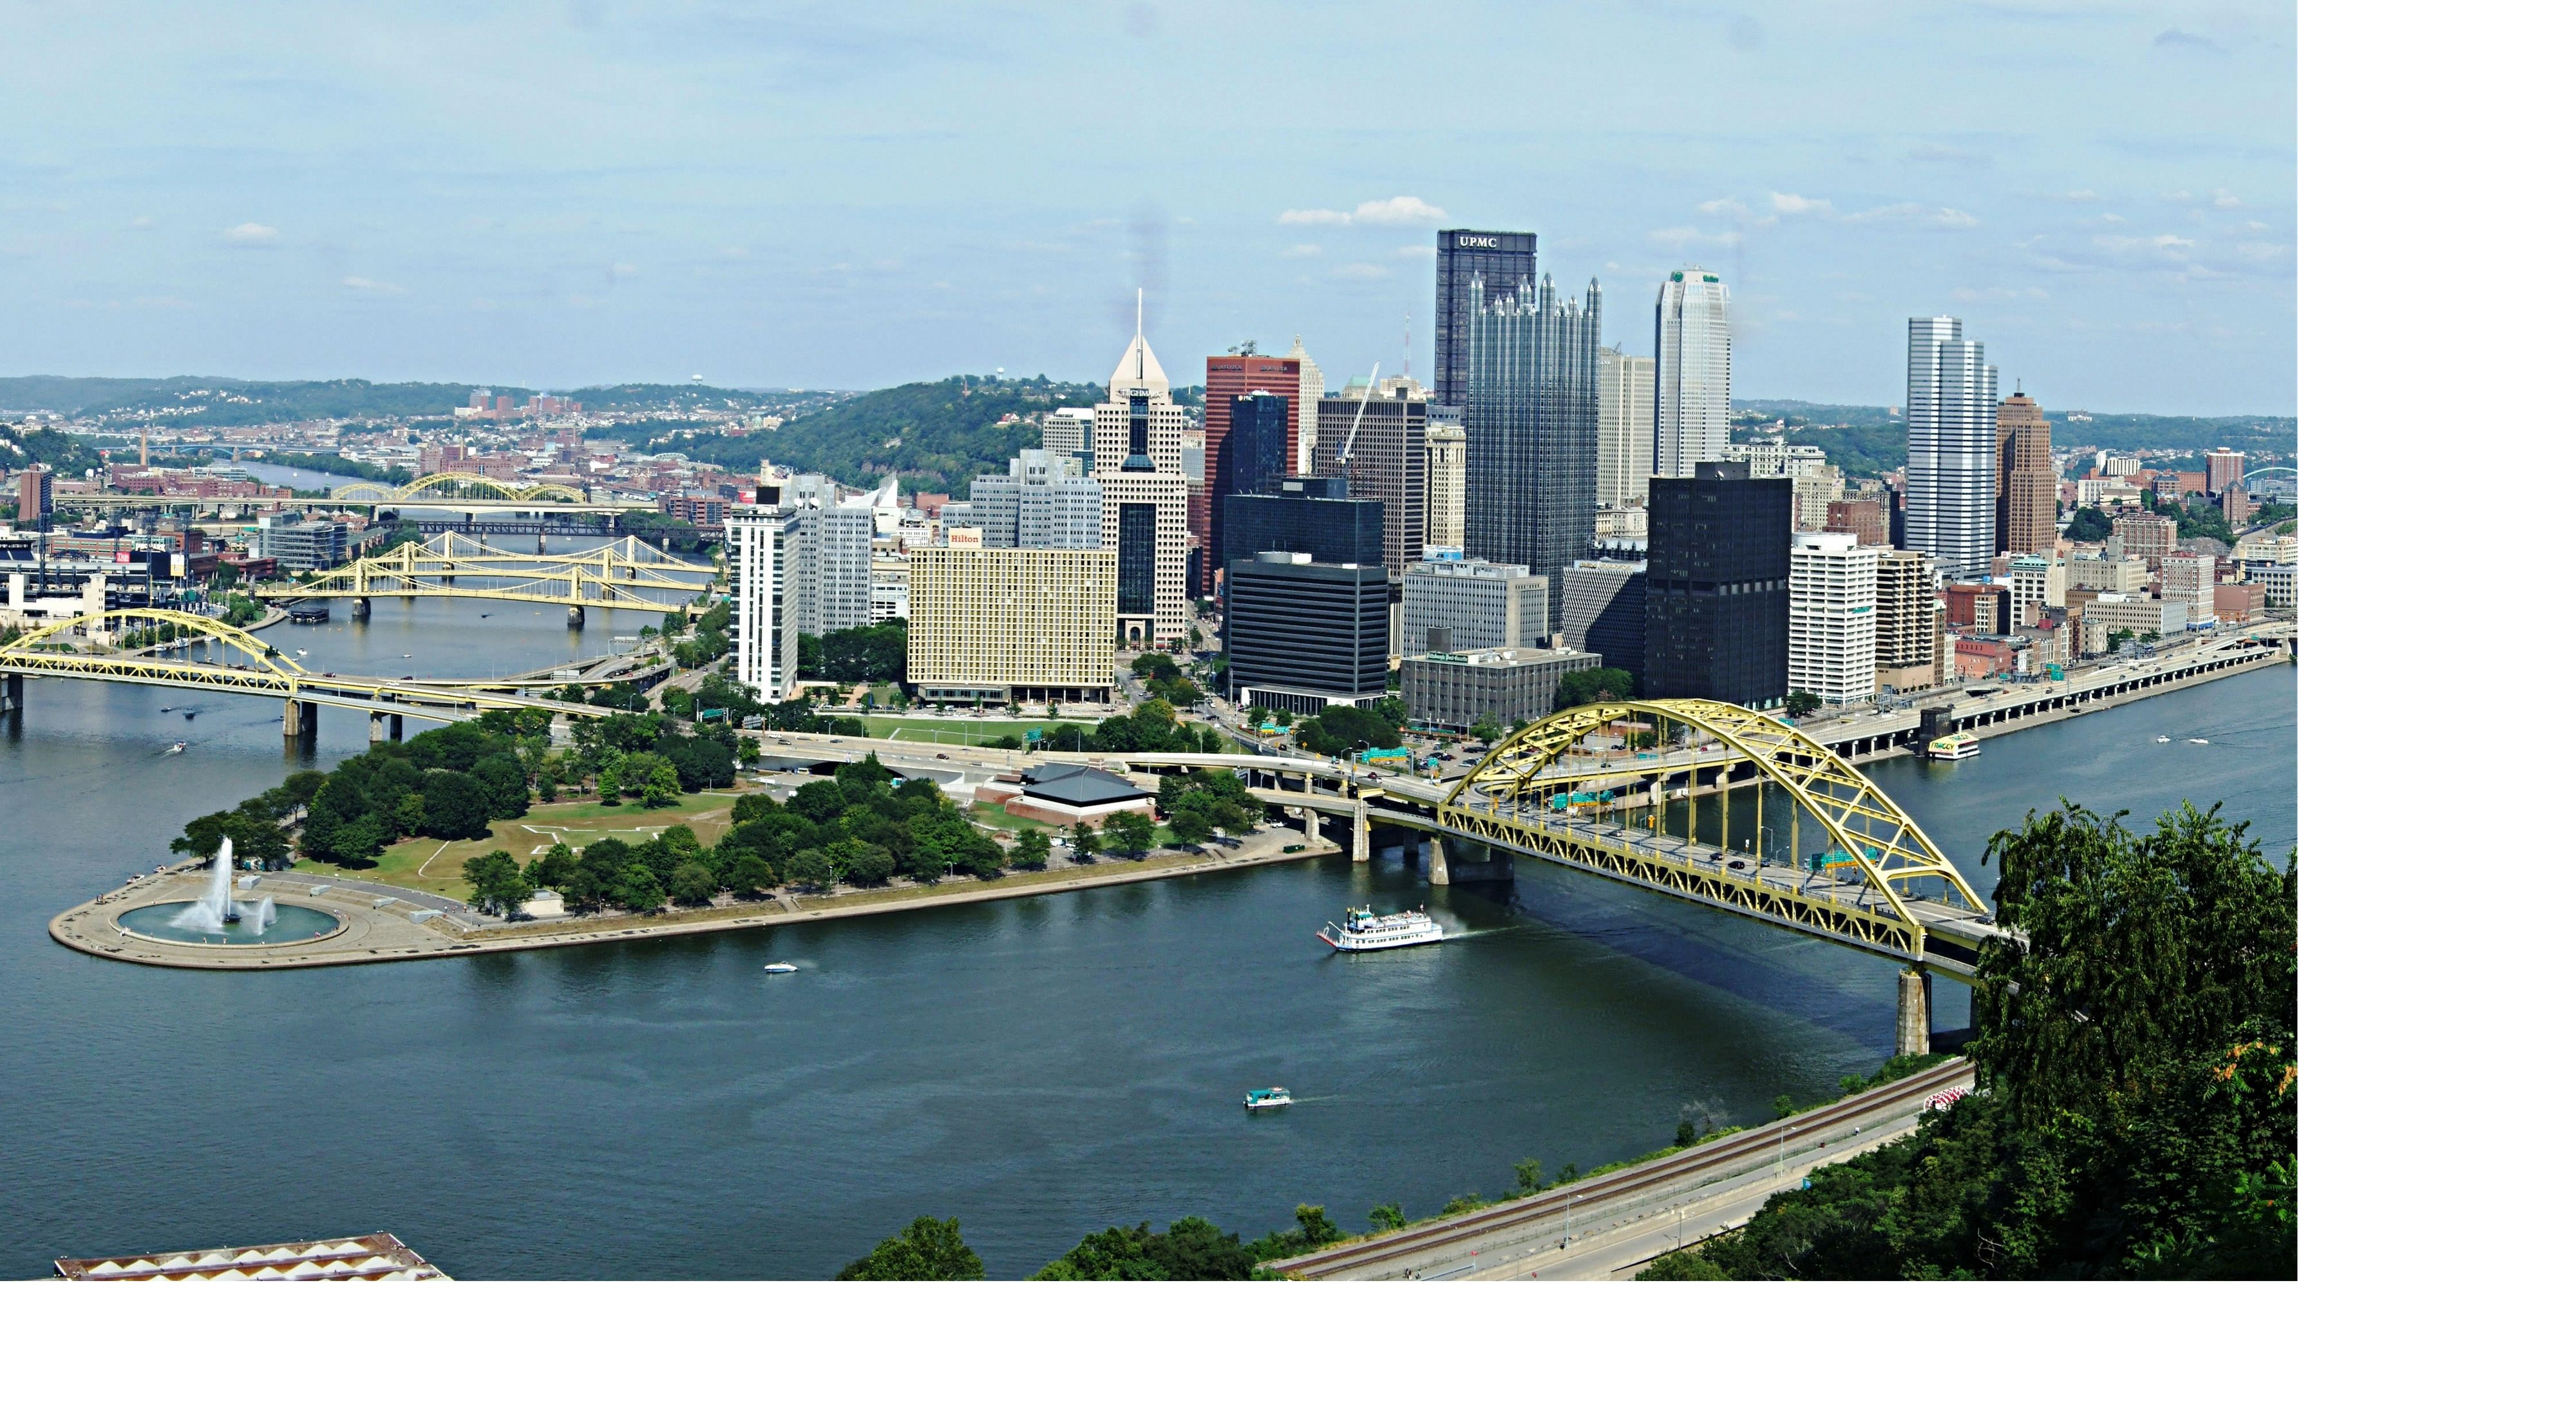 A city surrounded by two rivers and yellow bridges.